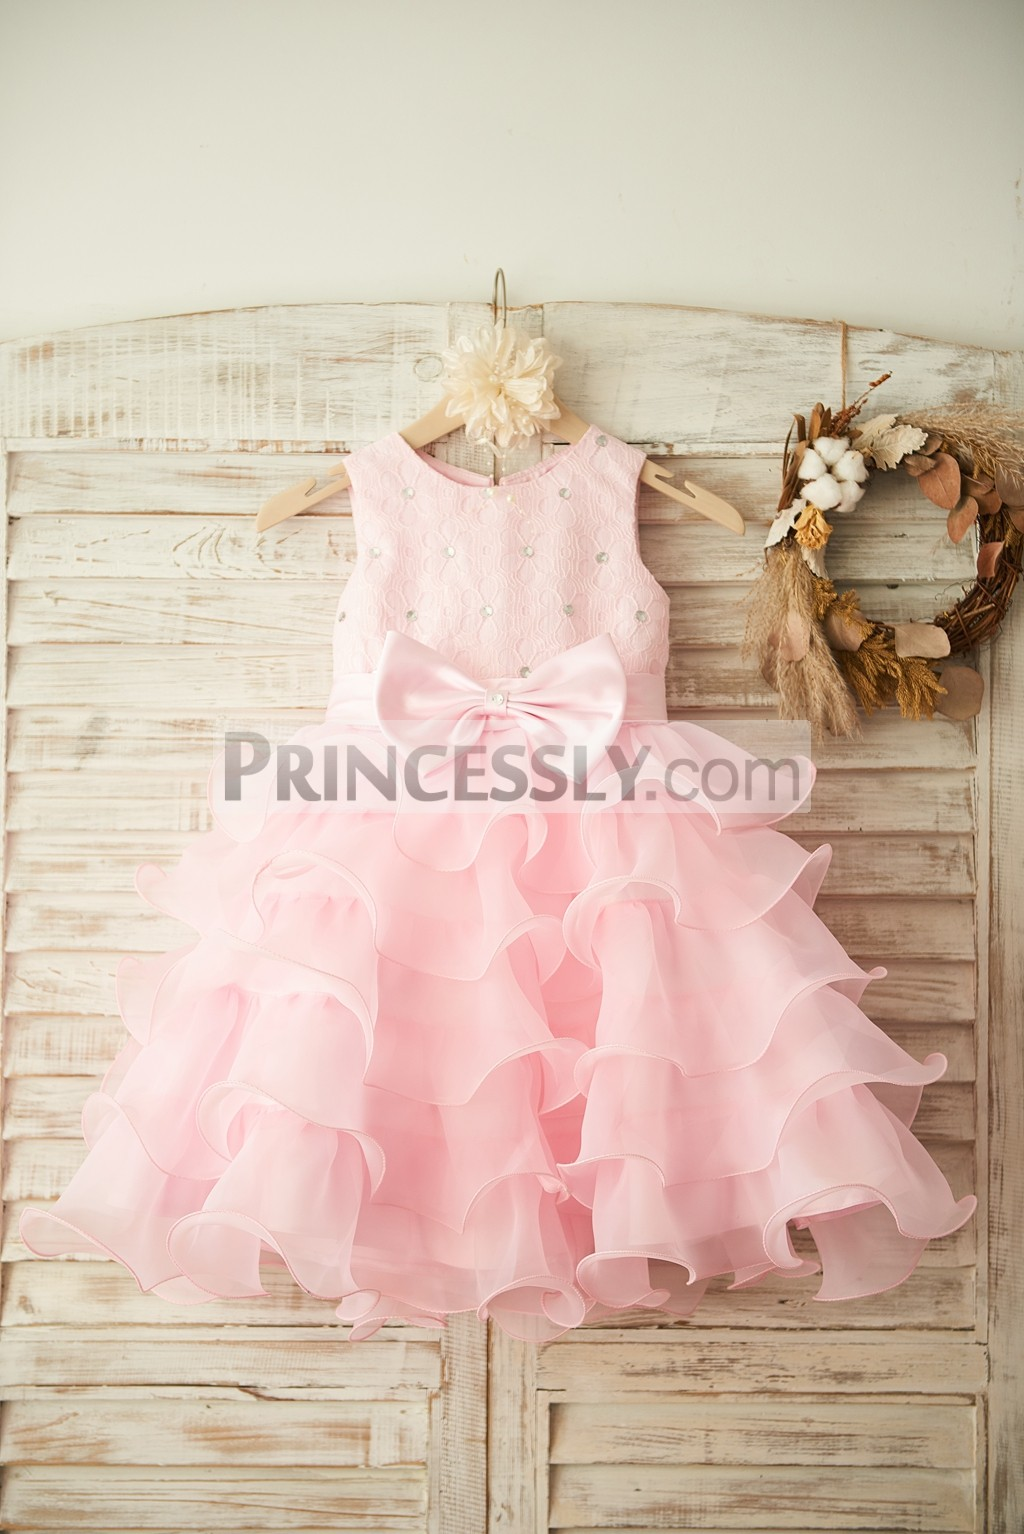 5edd85a0c04 Pink Beaded Lace Tiered Ruffle Organza Cupcake Skirt Flower Girl ...